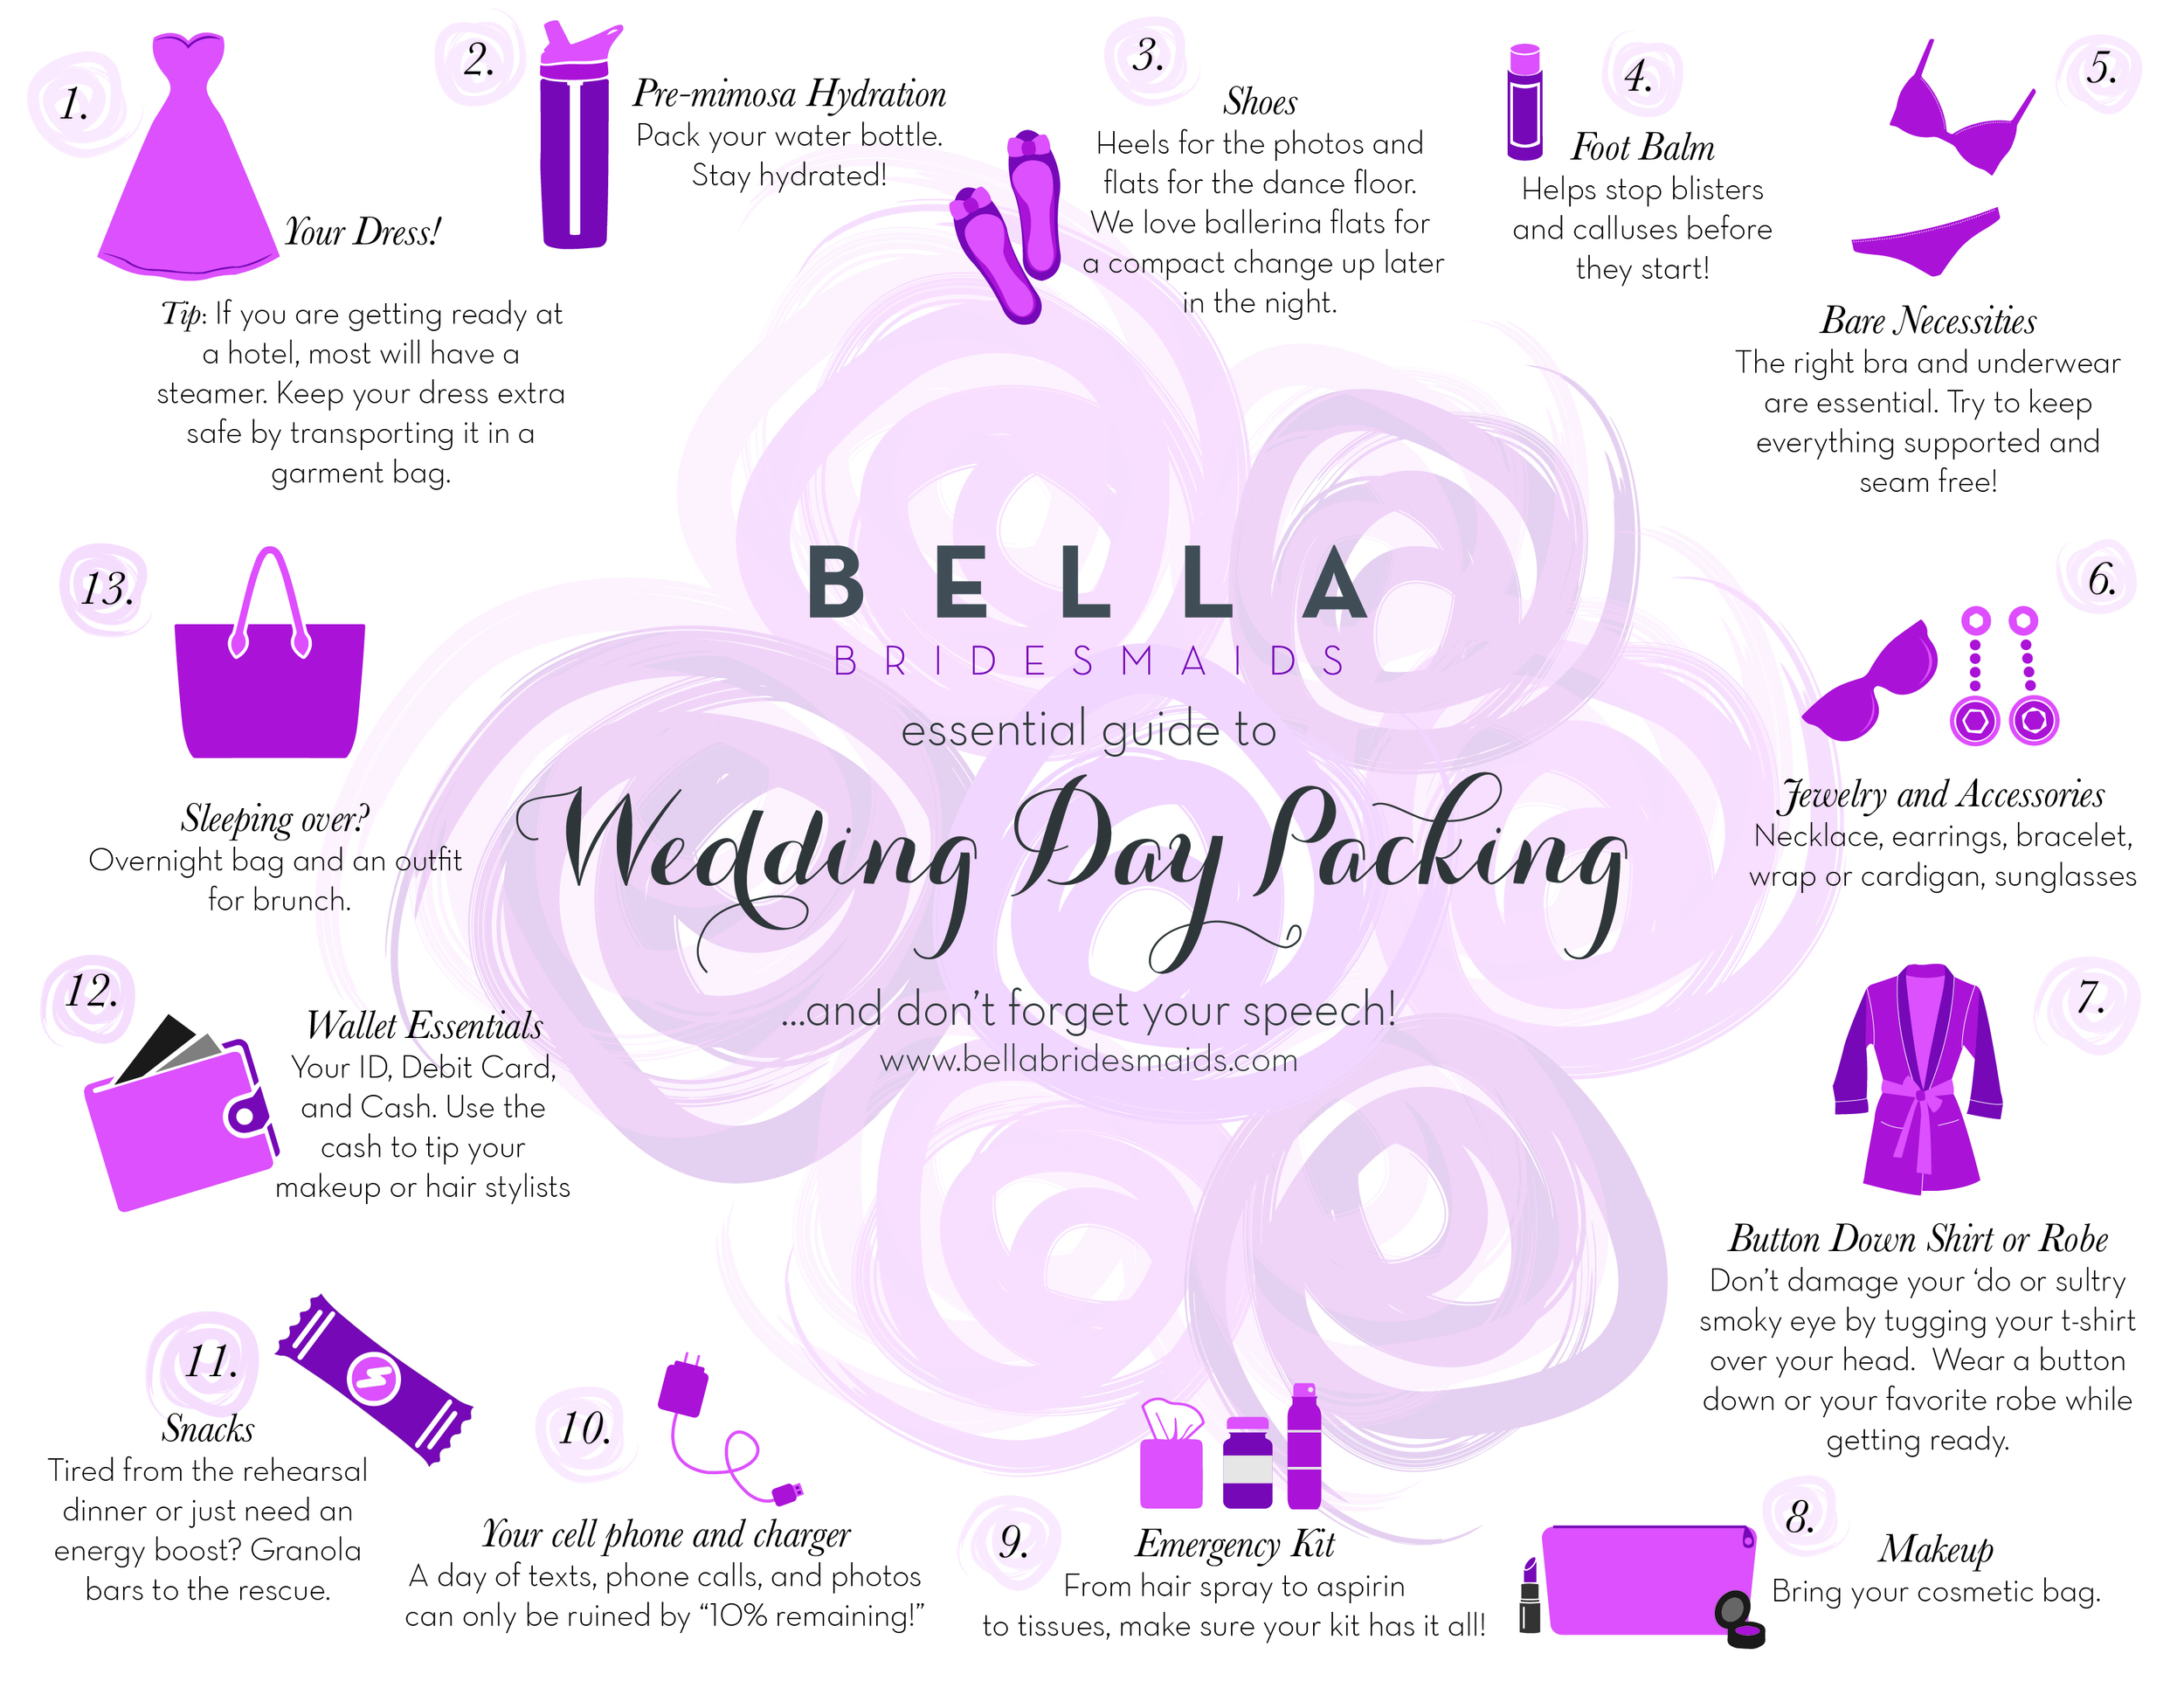 My most recent project-- A PR firm representing Bella Bridesmaids approached me to create an infographic about what to pack on a wedding day. Original digital illustrations and layout. Tre` cute!